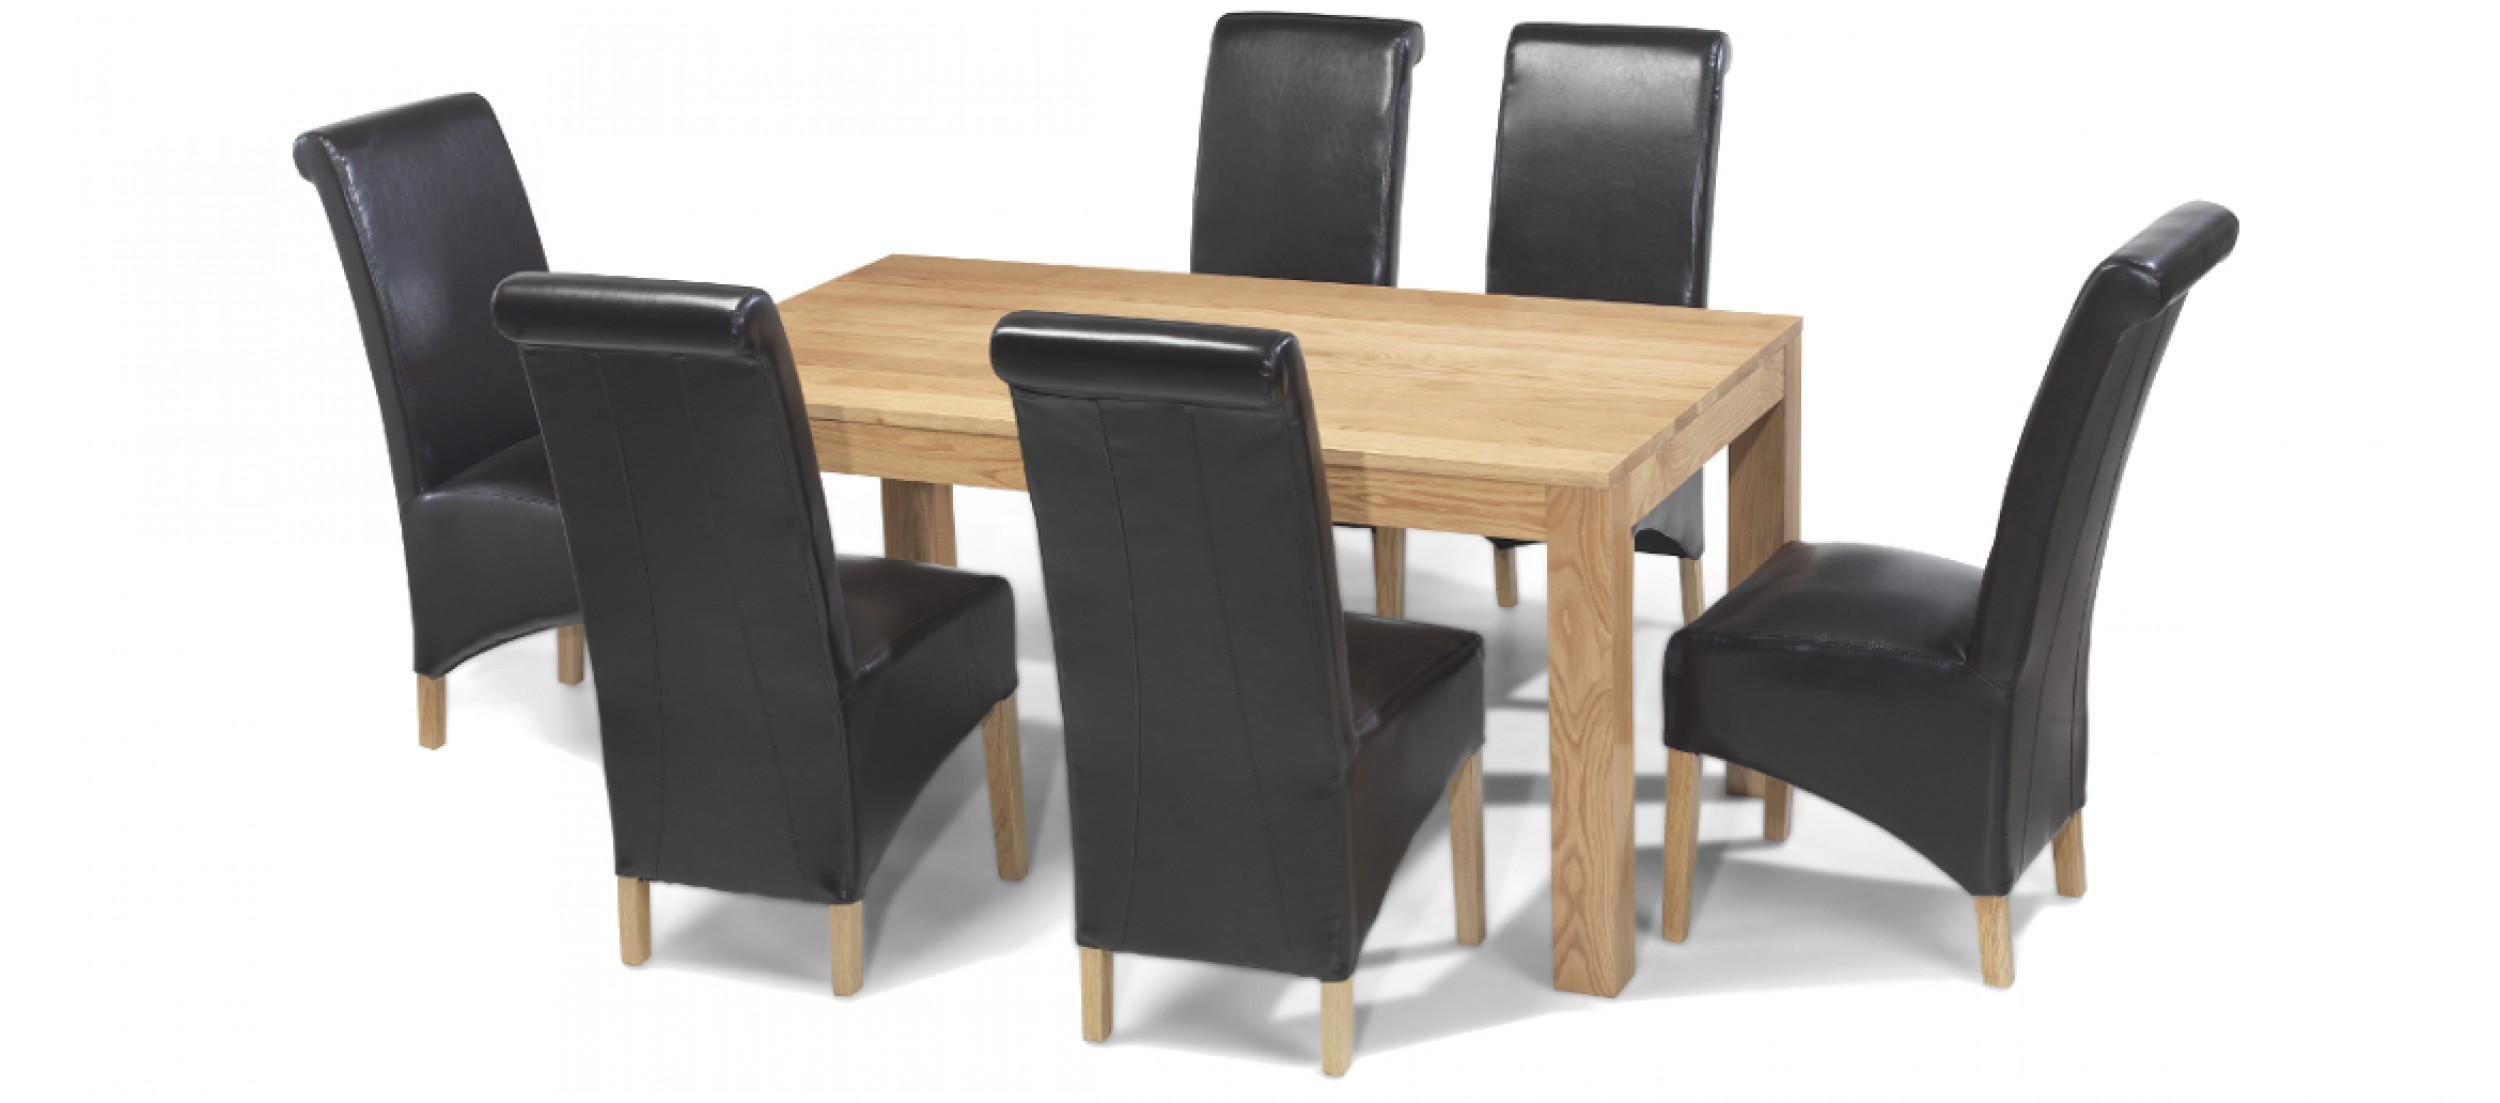 6 Dining Room Chairs Cube Oak 160 Cm Dining Table And 6 Chairs Quercus Living